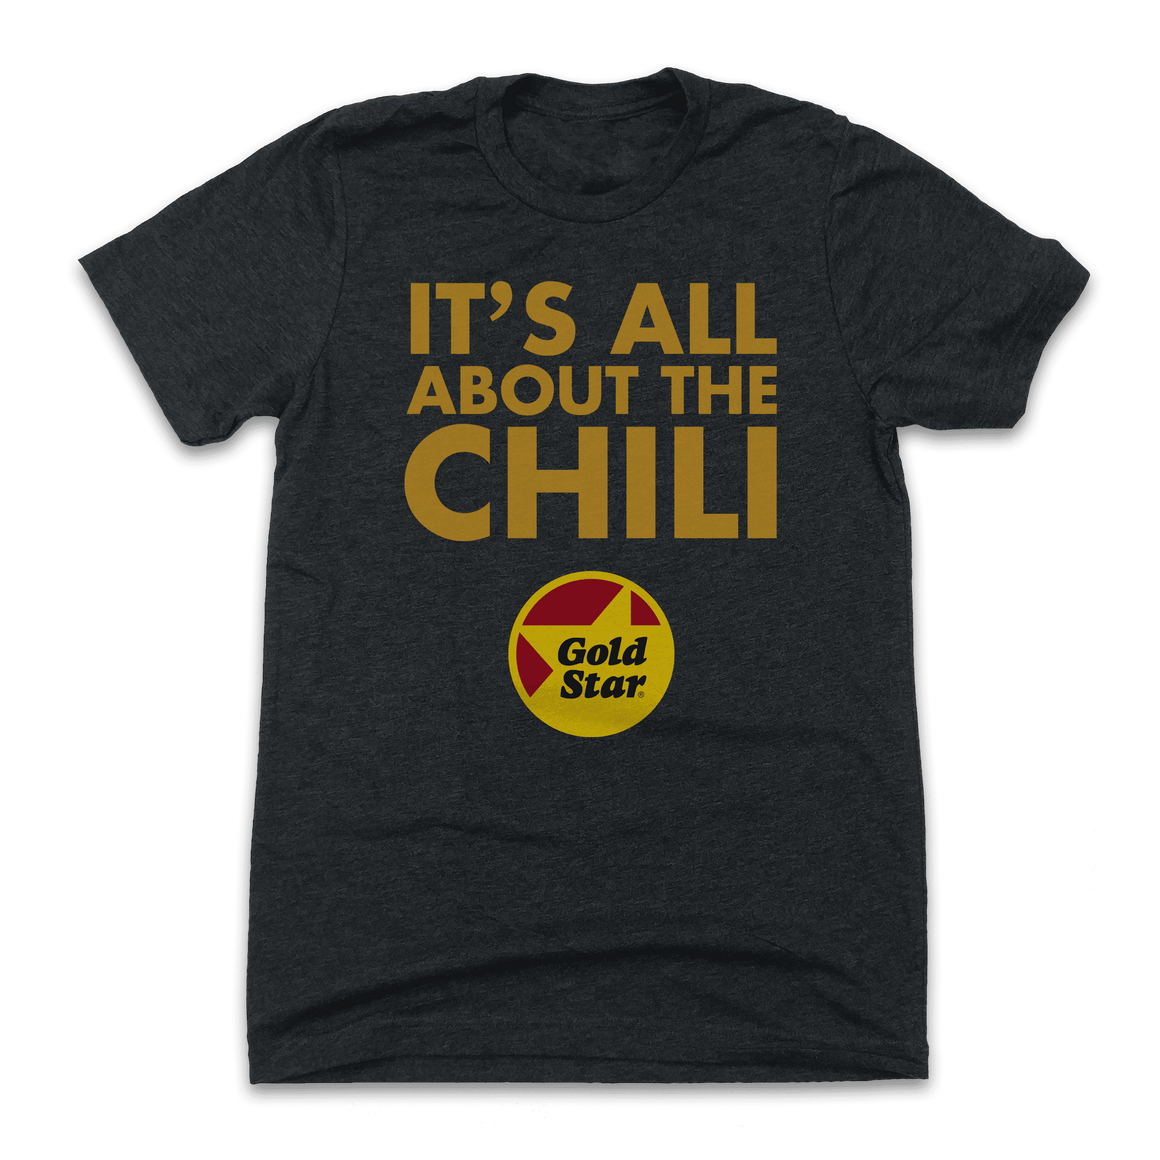 Chili Time - Gold Star Chili T-shirt